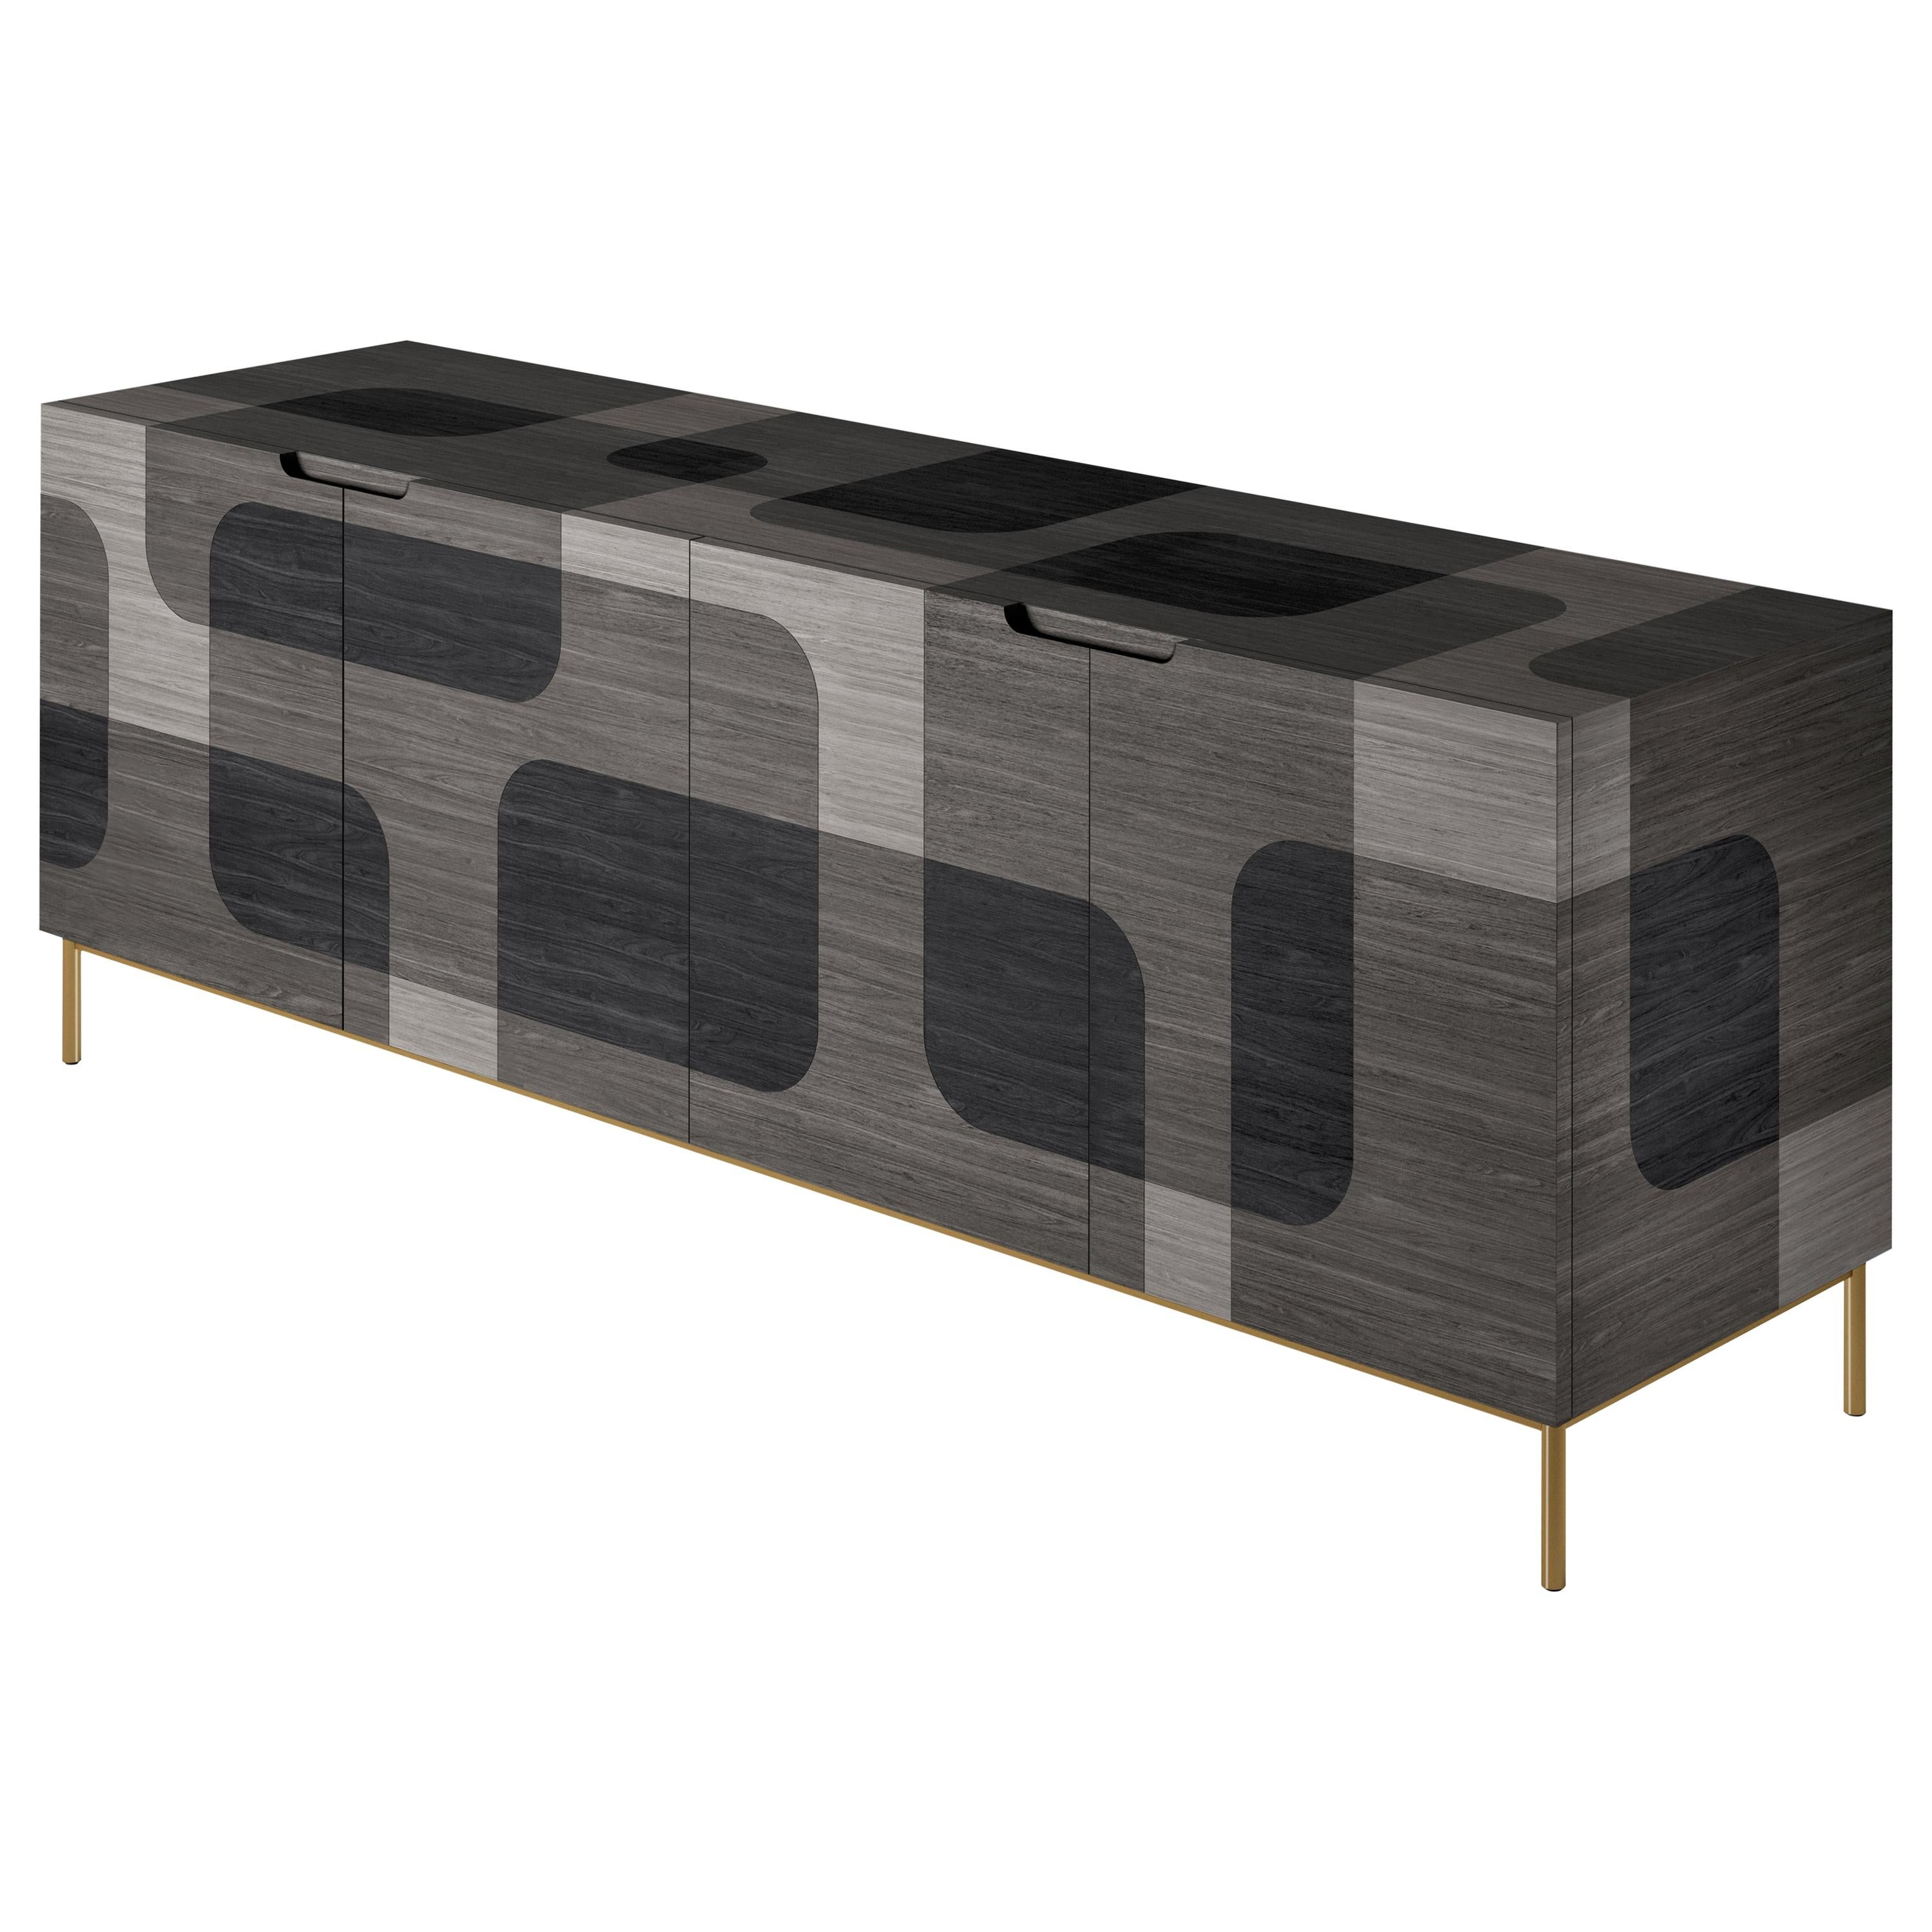 Grey Patterned Wood Credenza from Bodega Collection by Joel Escalona